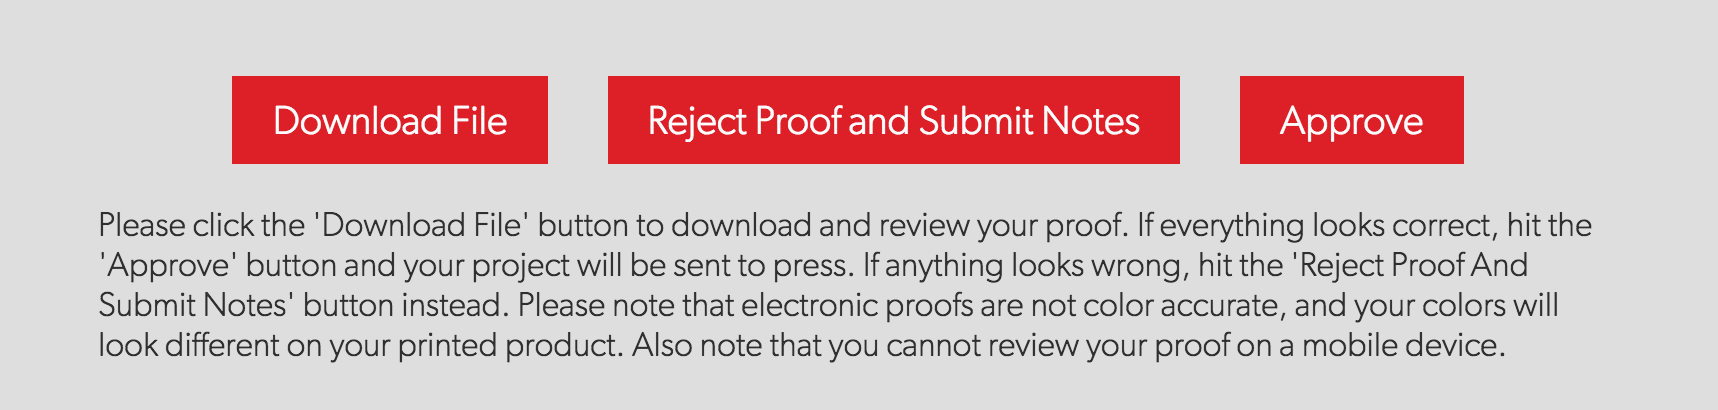 Electronic Proof Approval Button